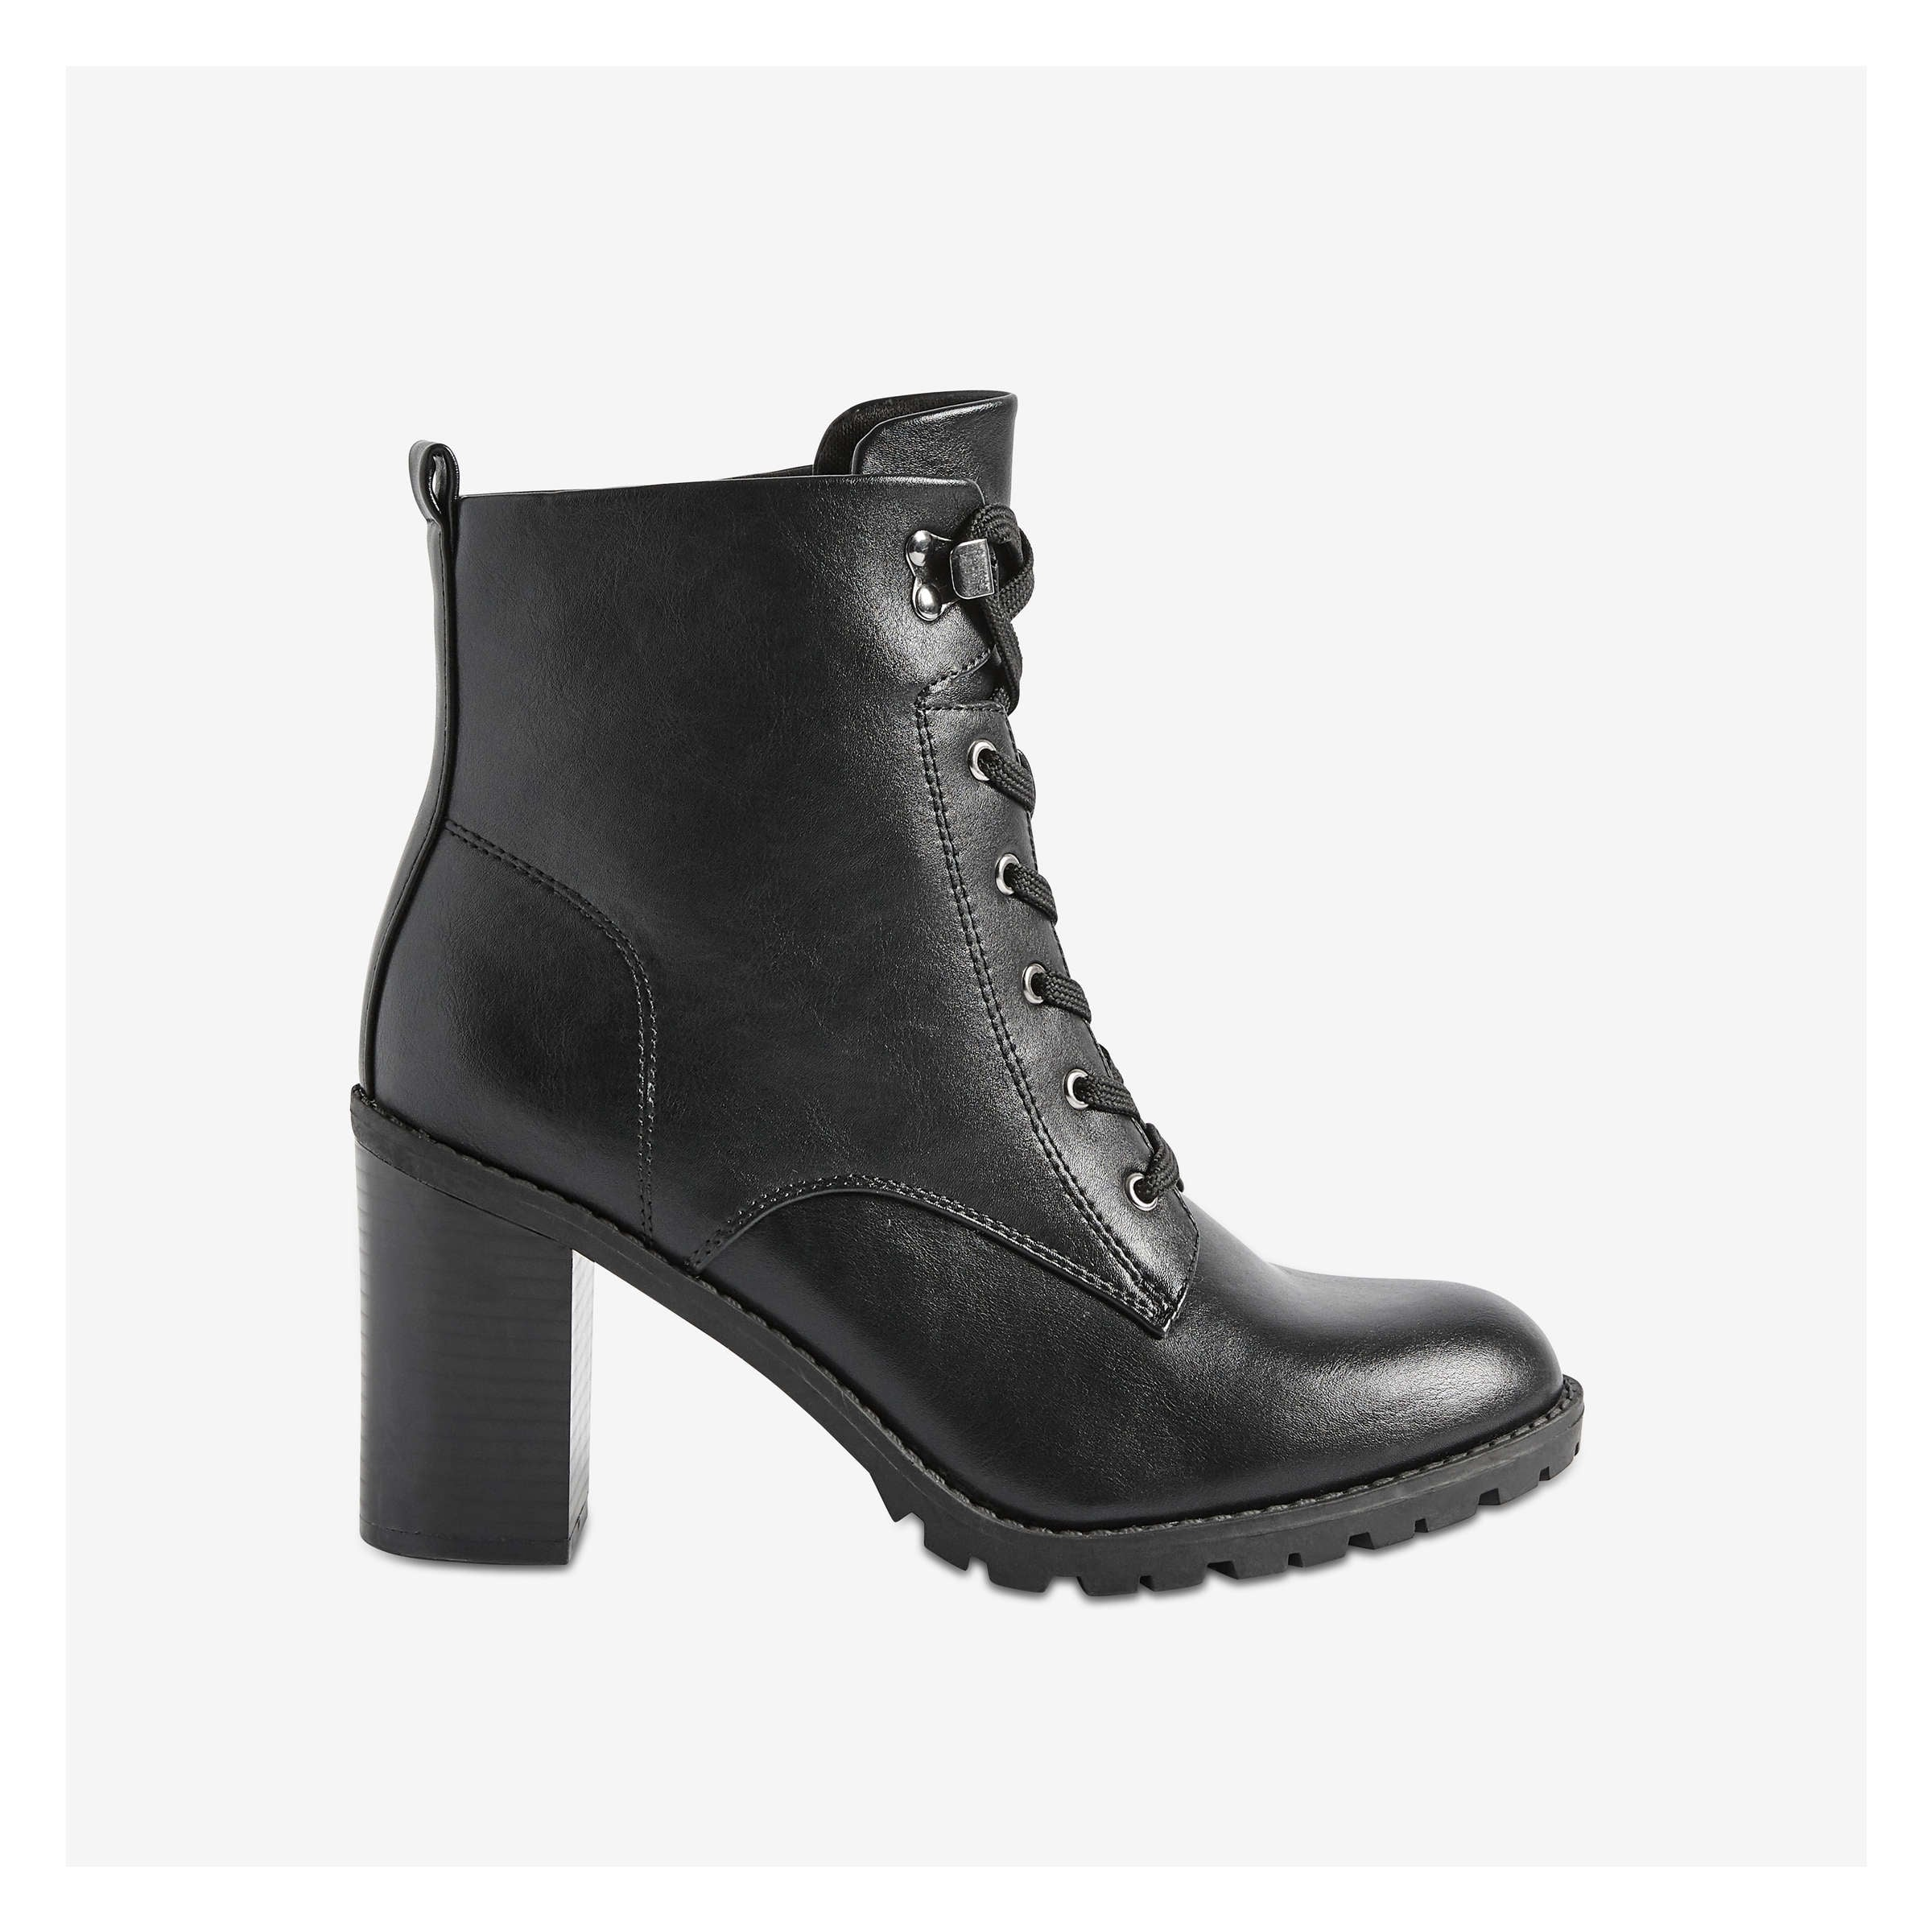 Heeled Lace Up Boots by Joe Fresh